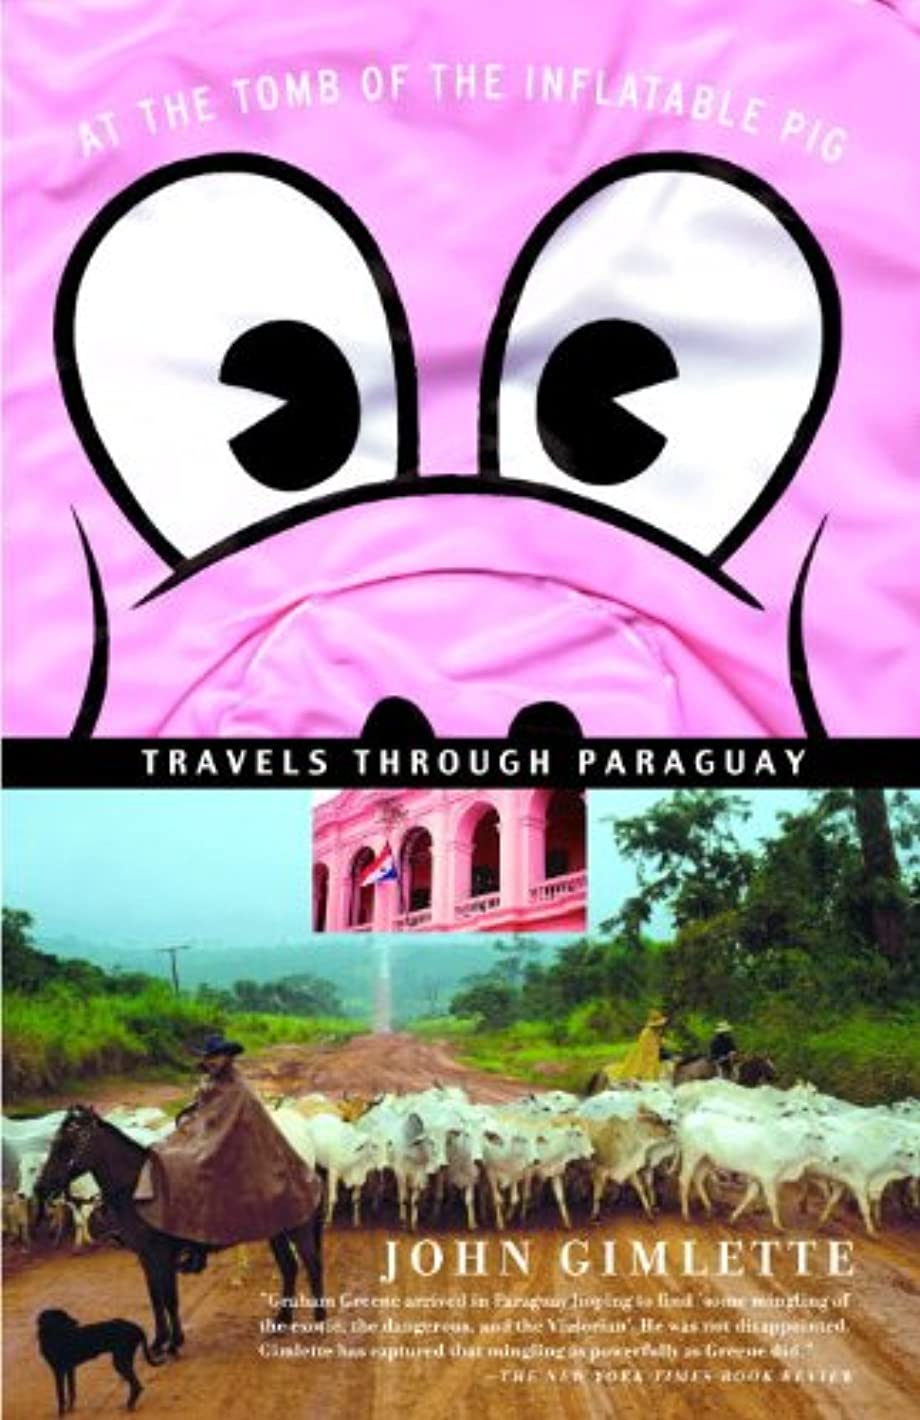 At the Tomb of the Inflatable Pig: Travels Through Paraguay (Vintage Departures) (English Edition)